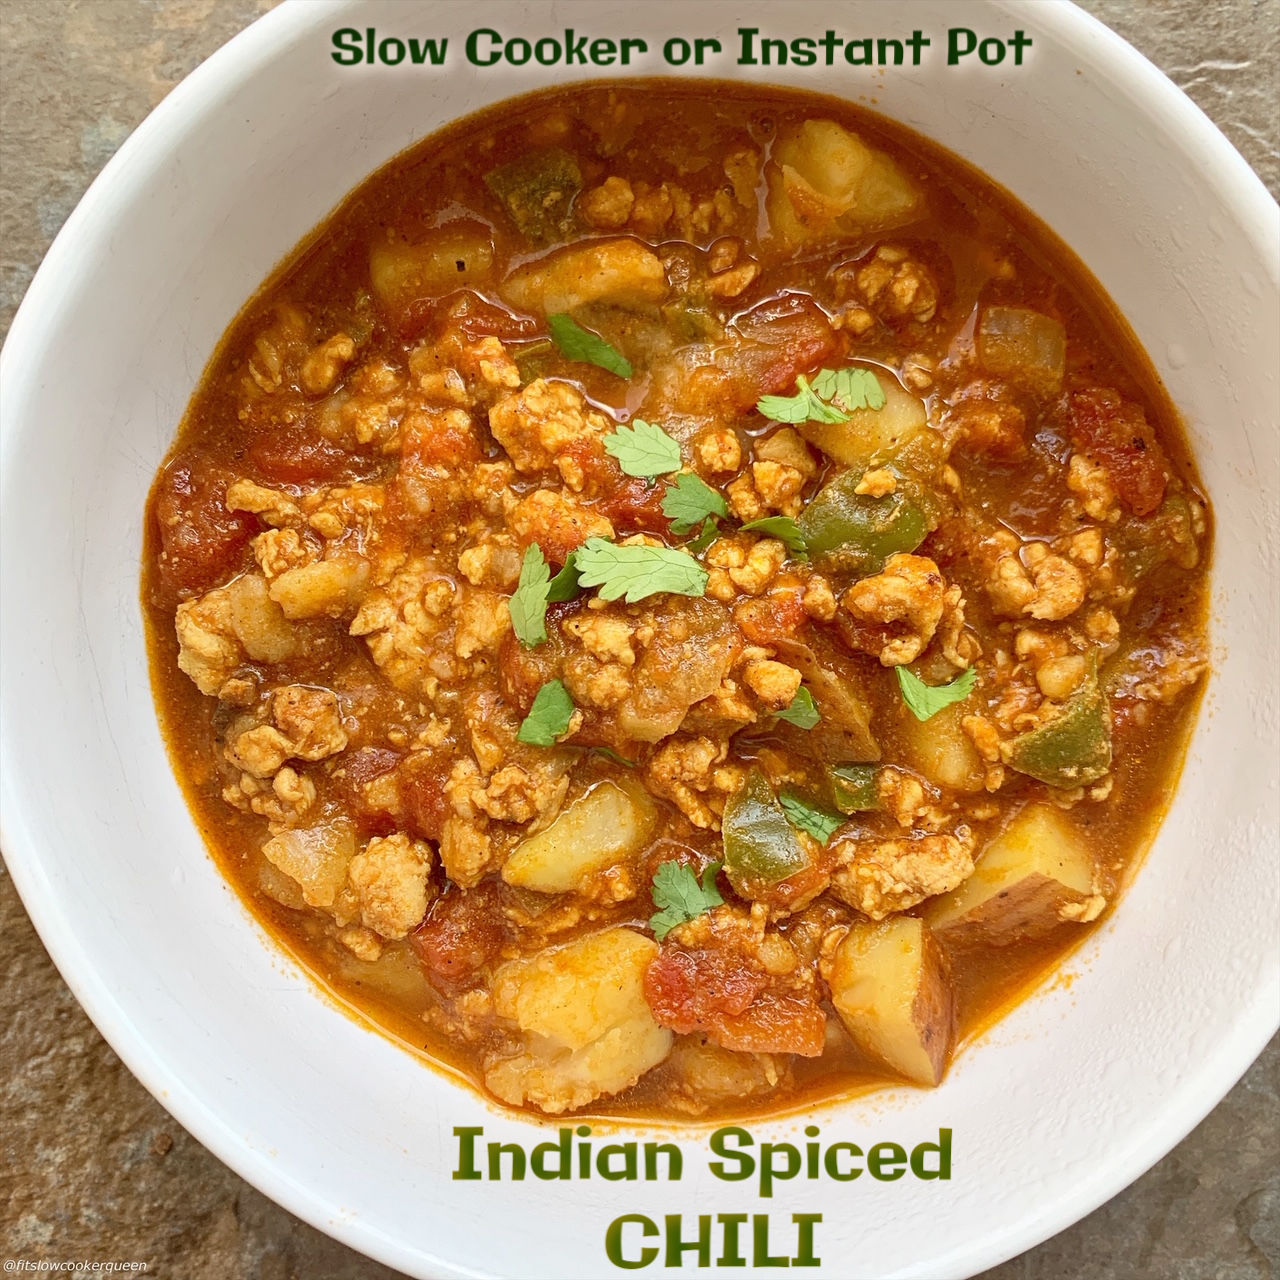 Indian spices and ingredients are used to make this unique version of chili. Make this paleo and whole30 chili in your slow cooker or Instant Pot.